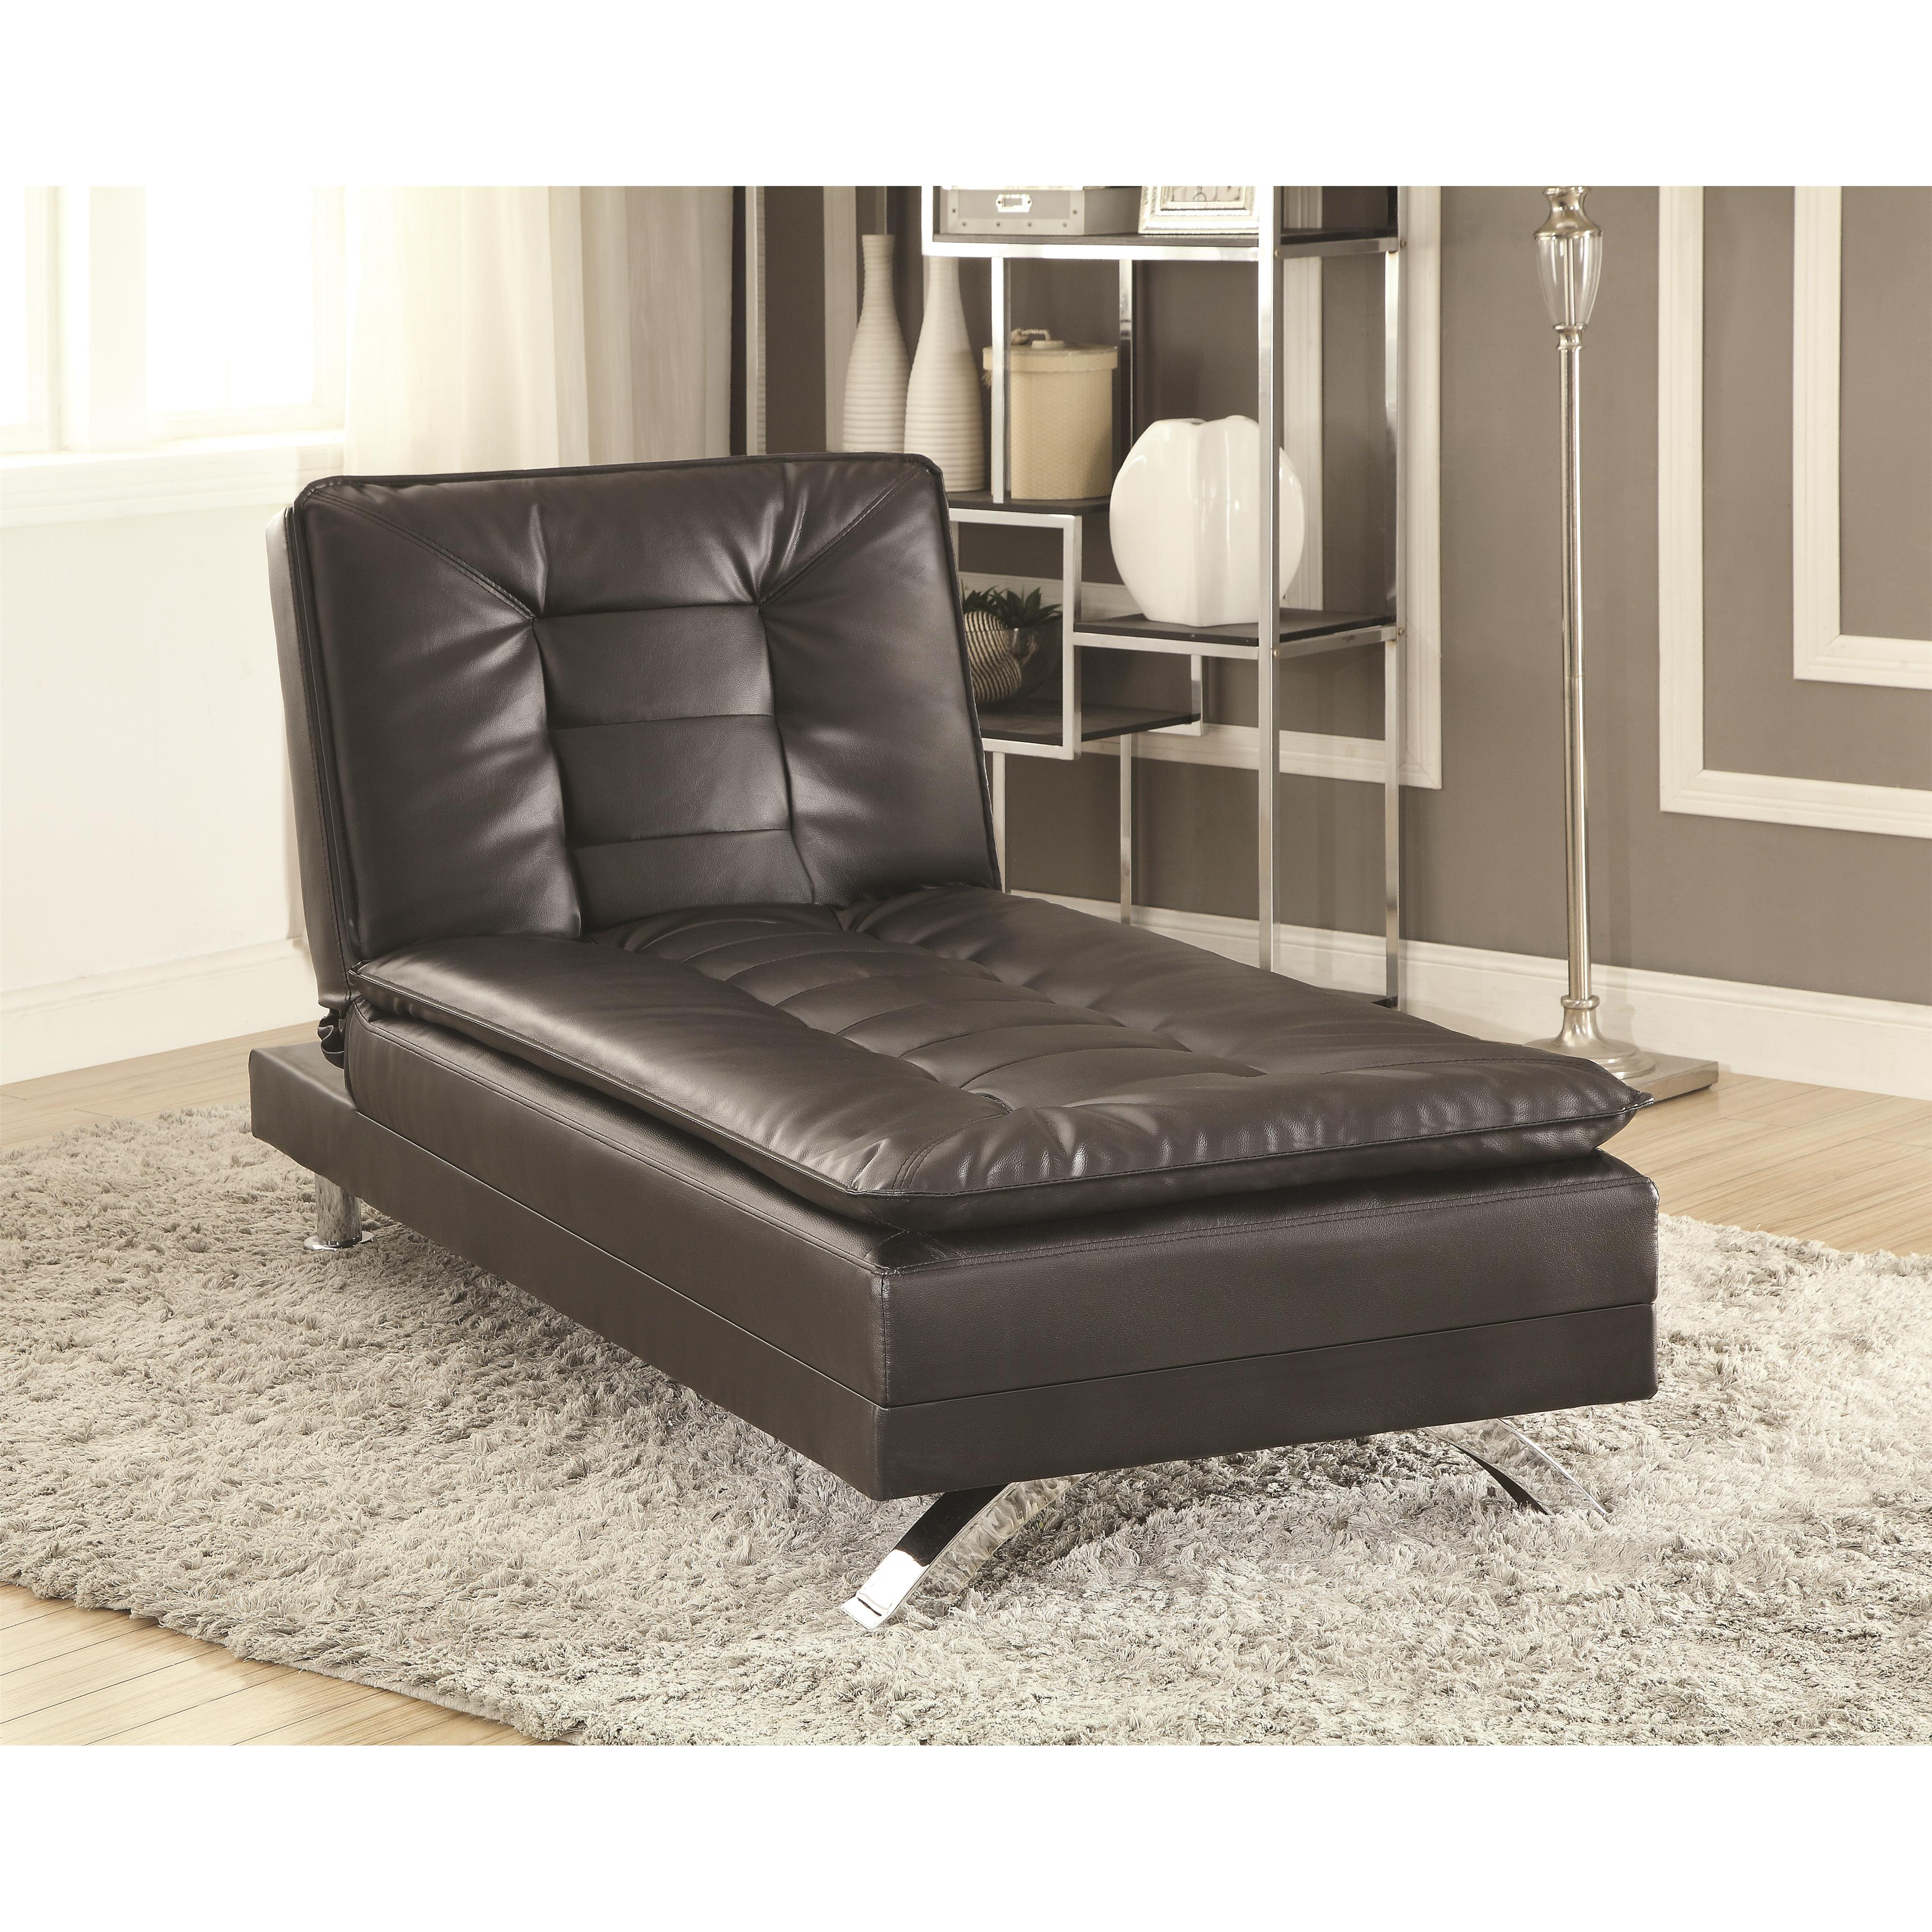 Coaster Erickson Chaise - Item Number: 508062